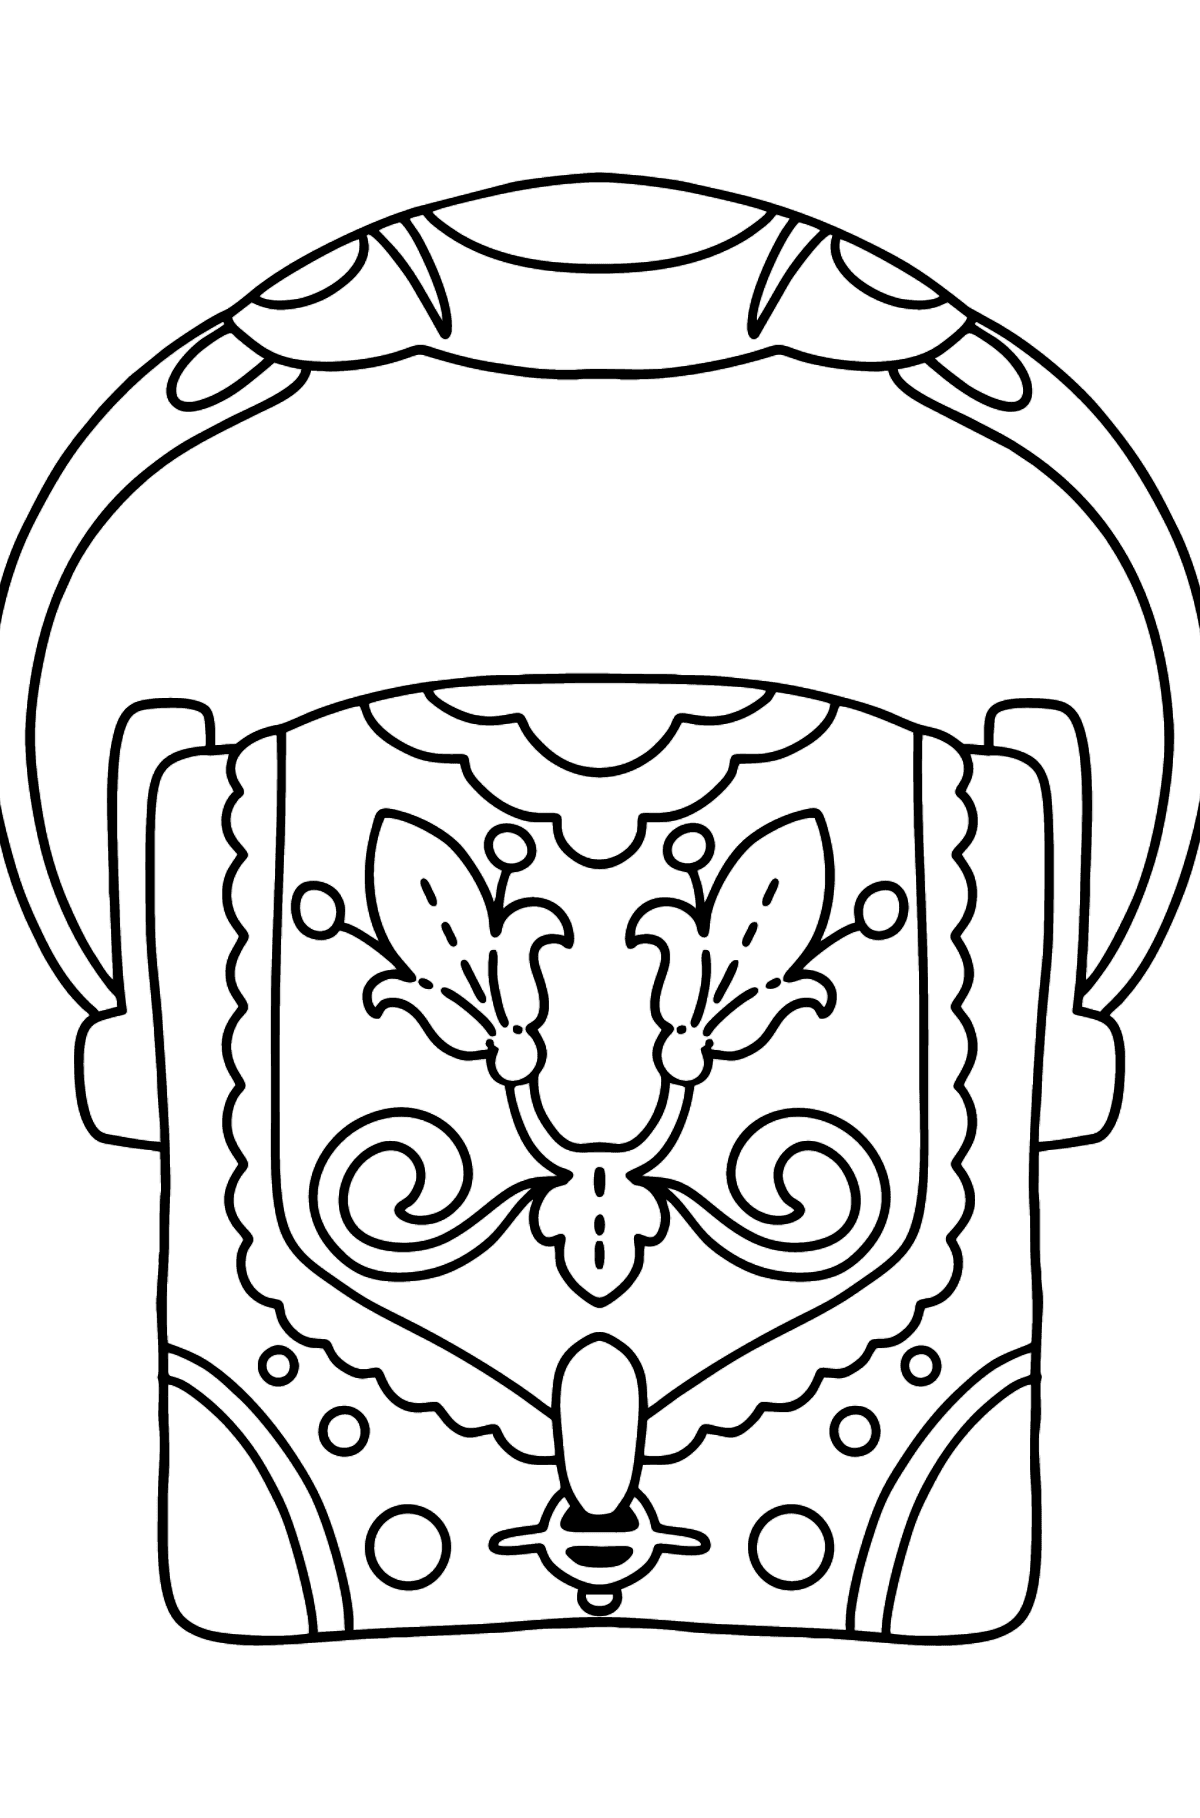 Coloring page with bag - Coloring Pages for Kids